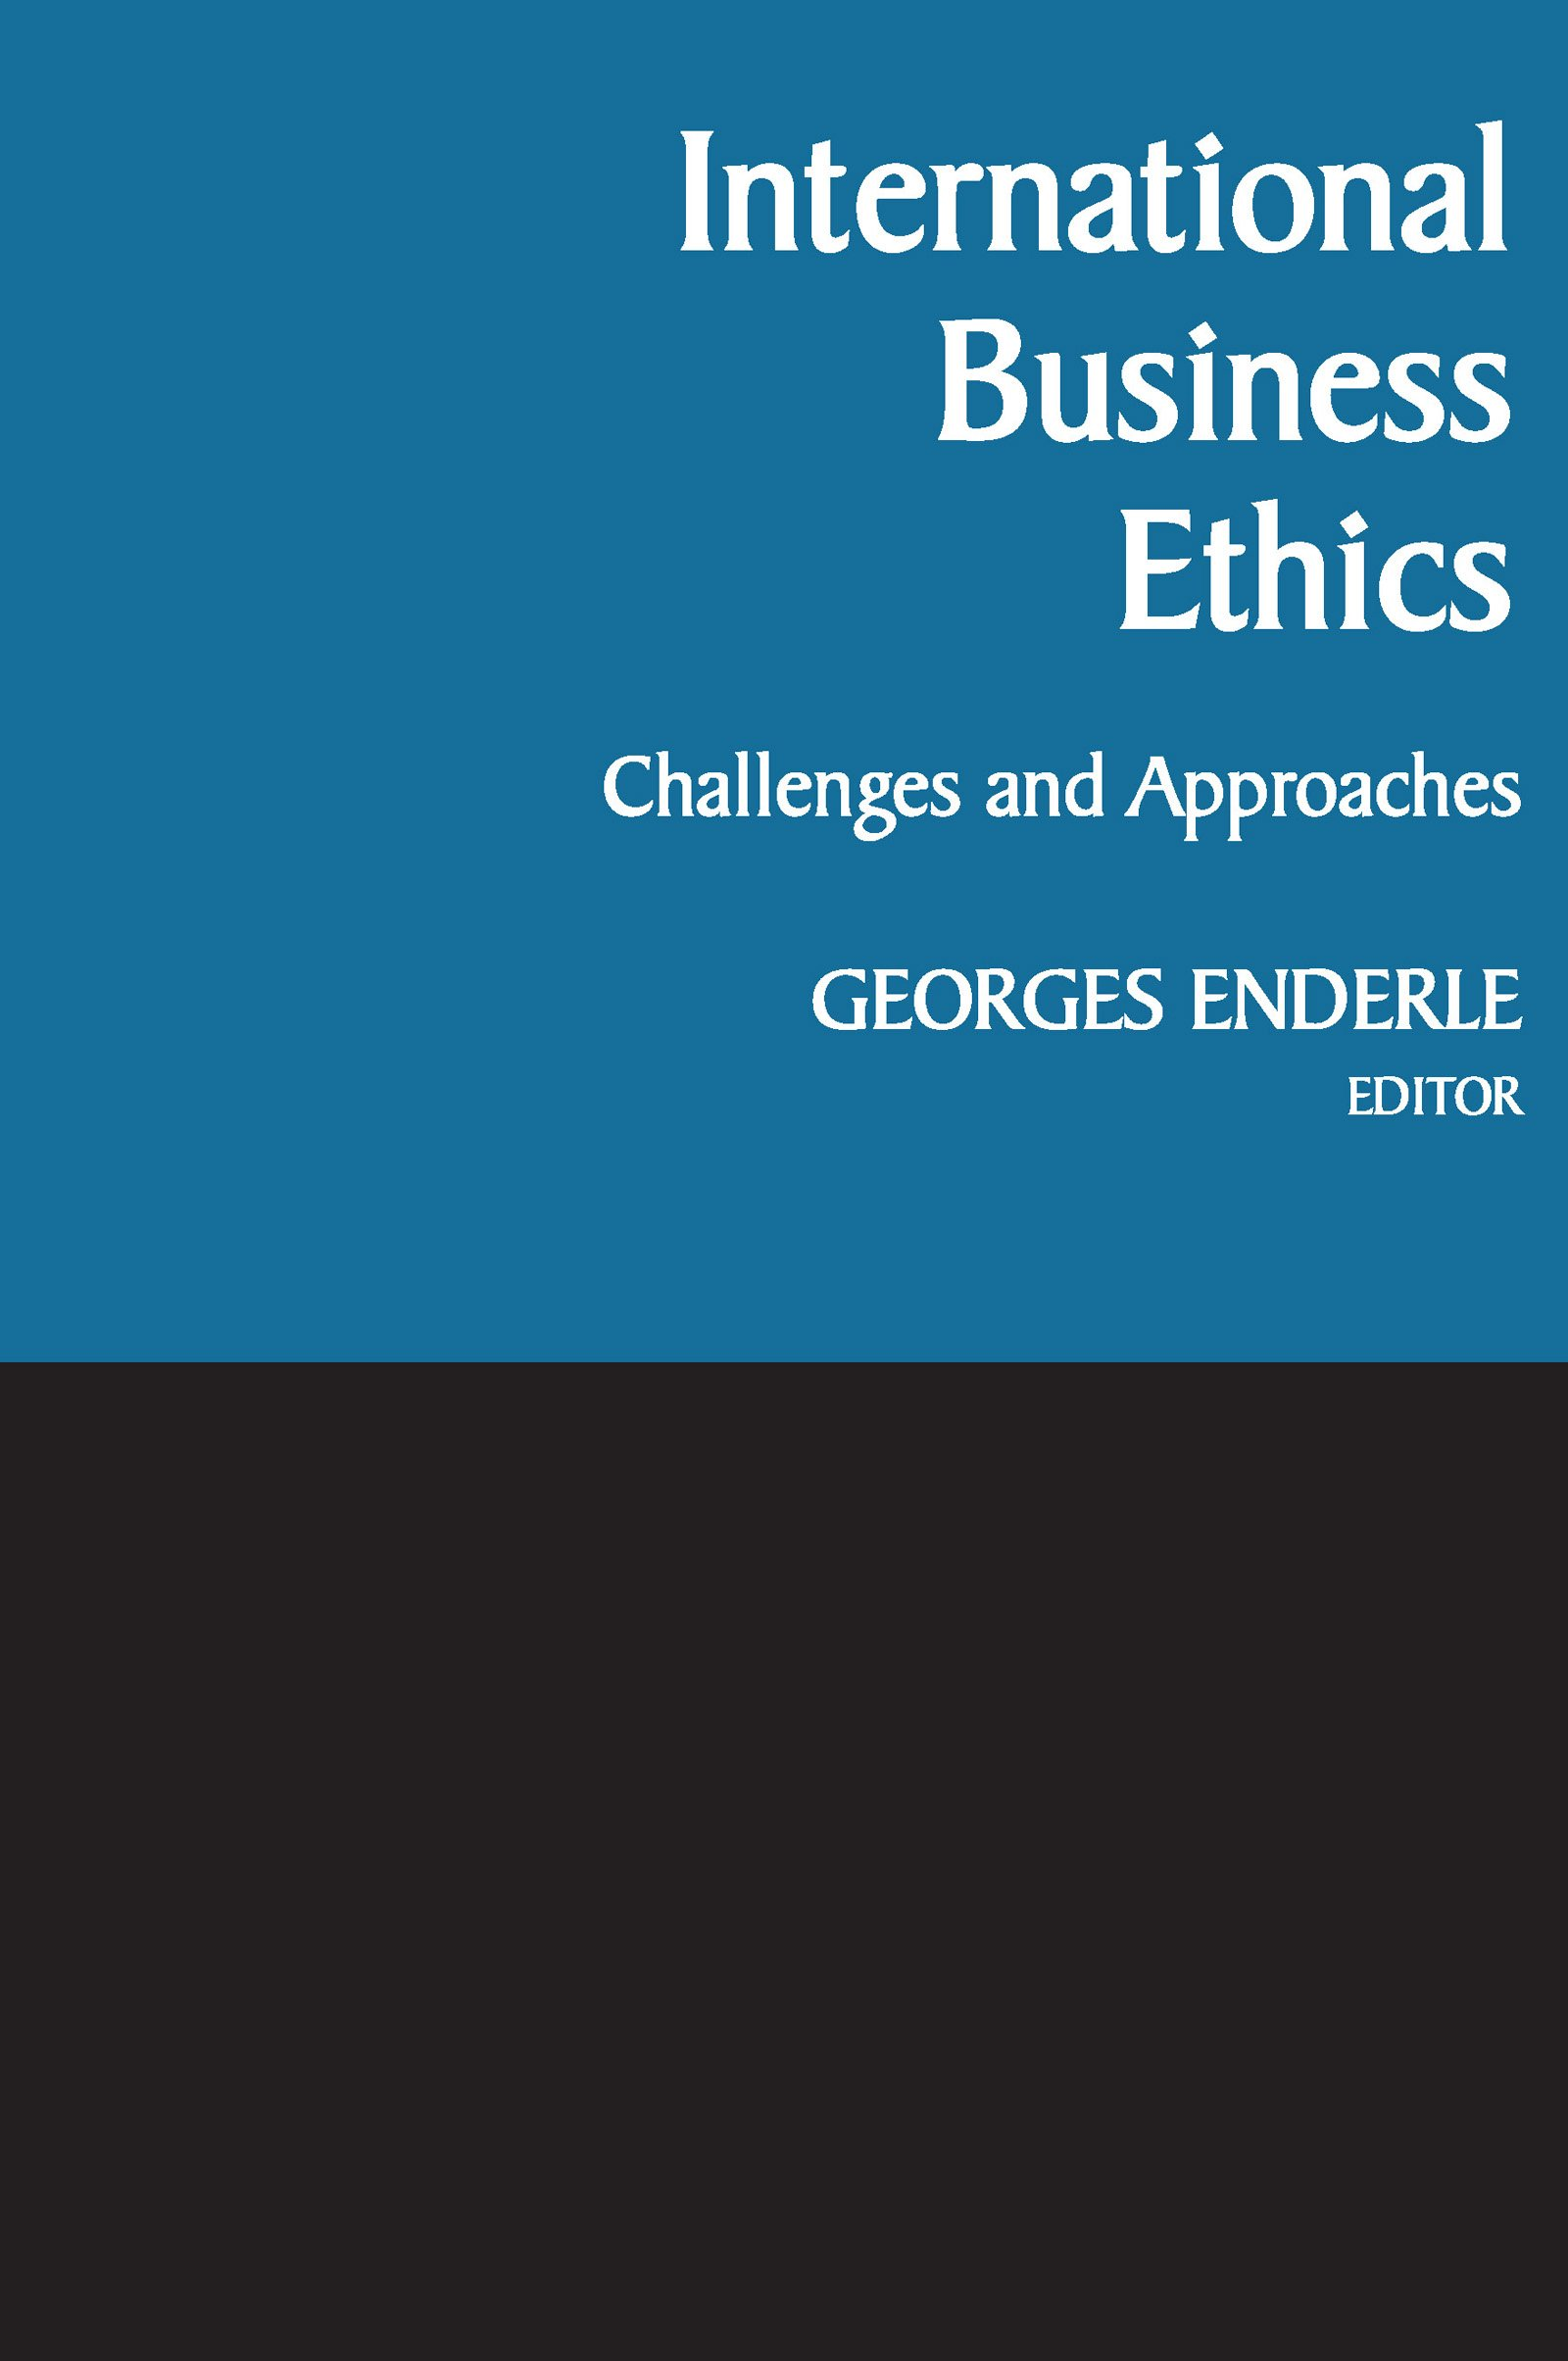 International Business Ethics: Challenges and Approaches: Georges Enderle:  9780268012144: Amazon.com: Books